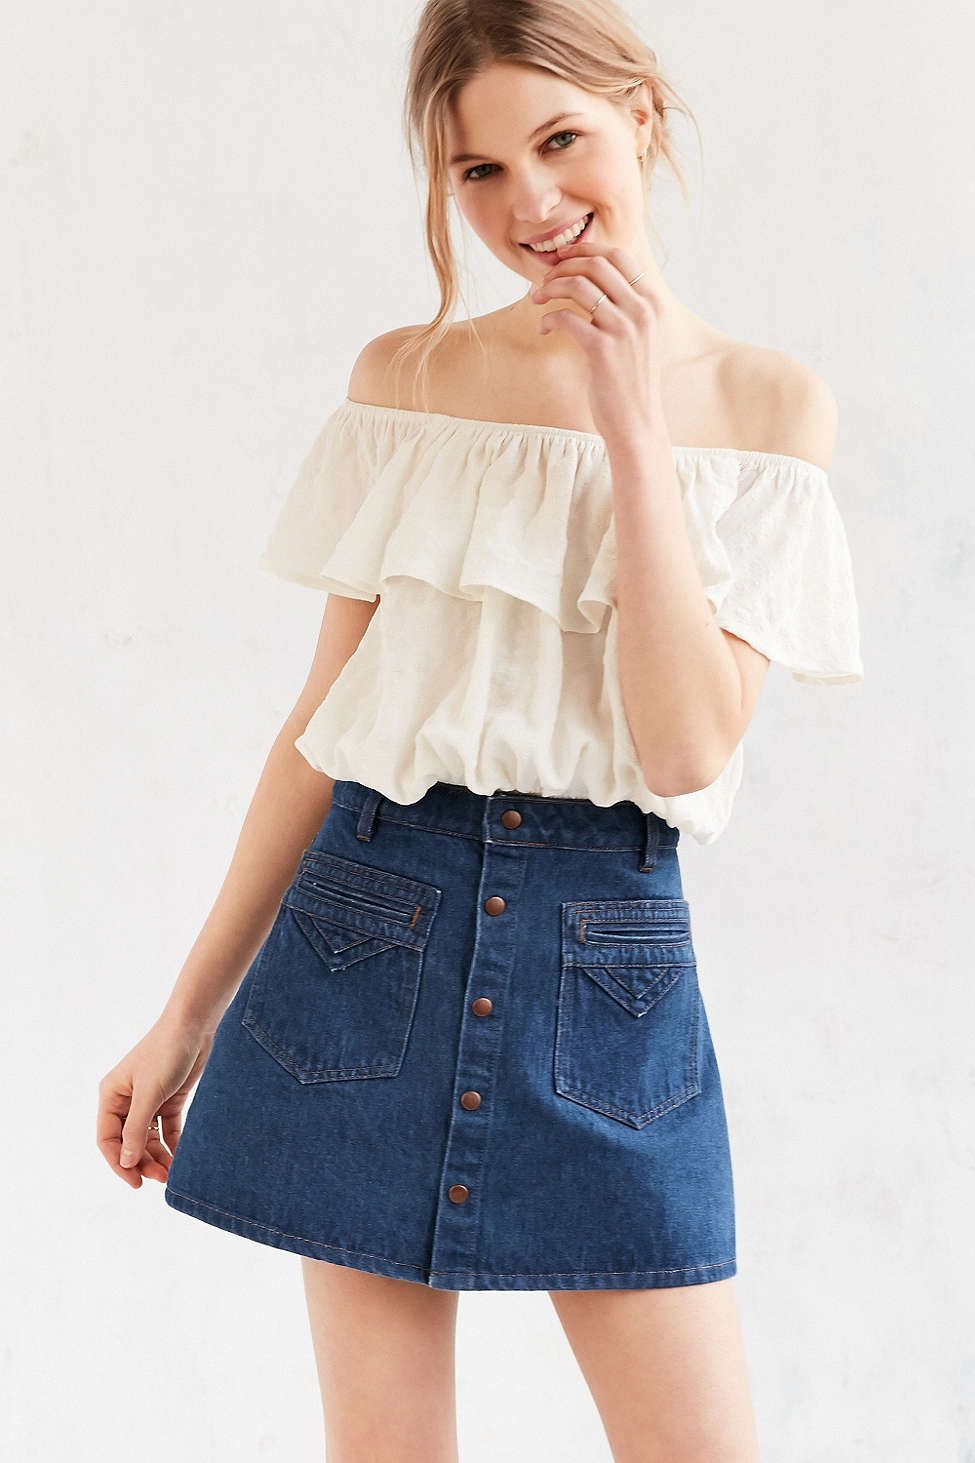 fe8113d39c Objects Without Meaning For UO Denim Button-Down Mini Skirt - Urban  Outfitters